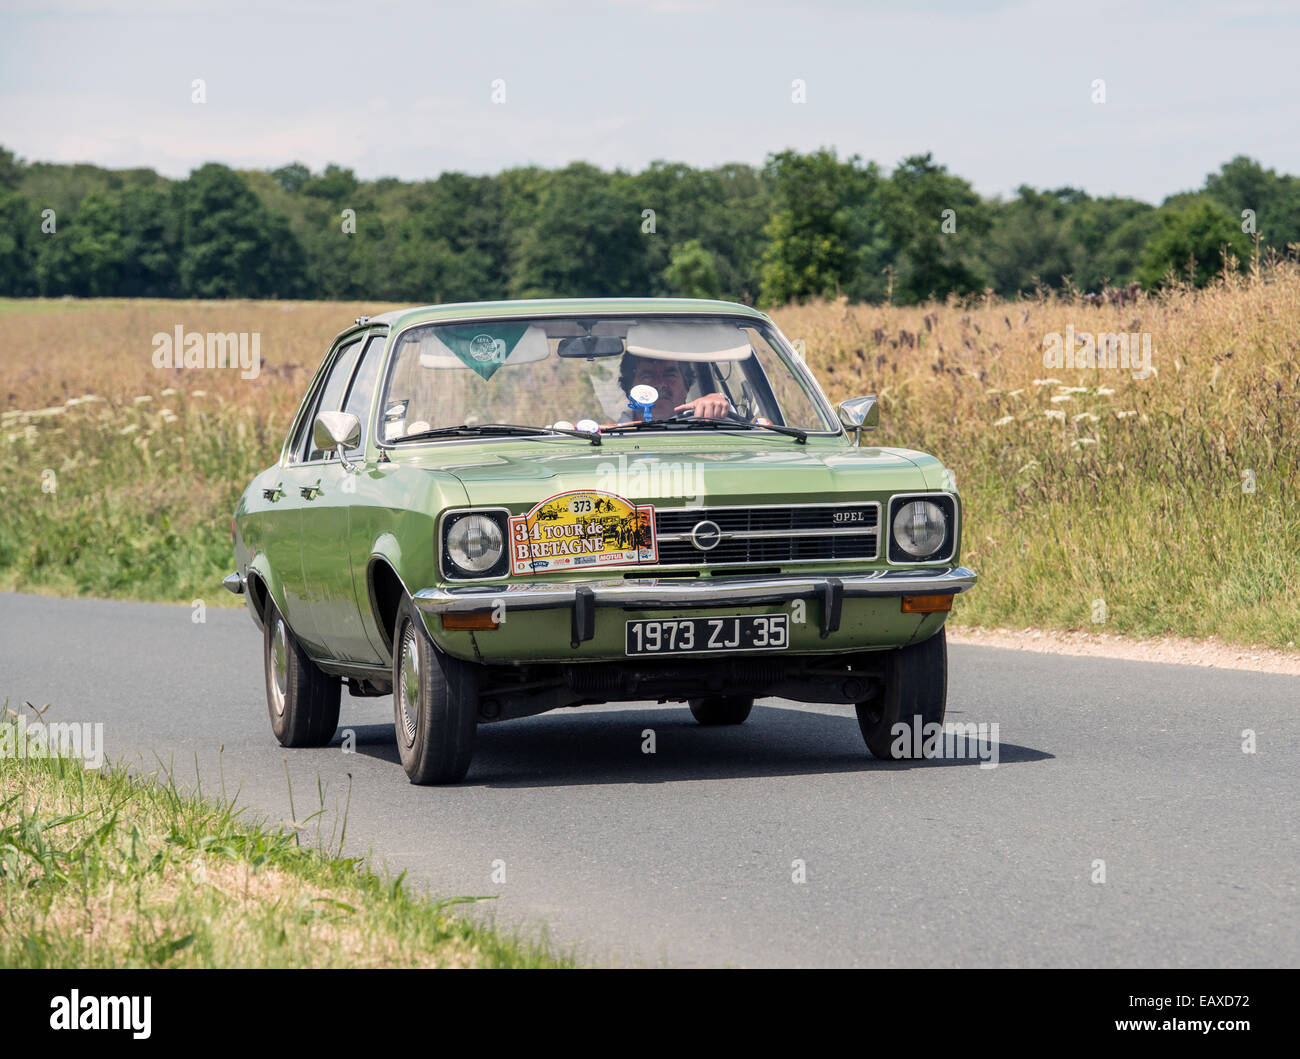 opel ascona a12ls of 1973 in the tour de bretagne 2014 france stock photo royalty free image. Black Bedroom Furniture Sets. Home Design Ideas